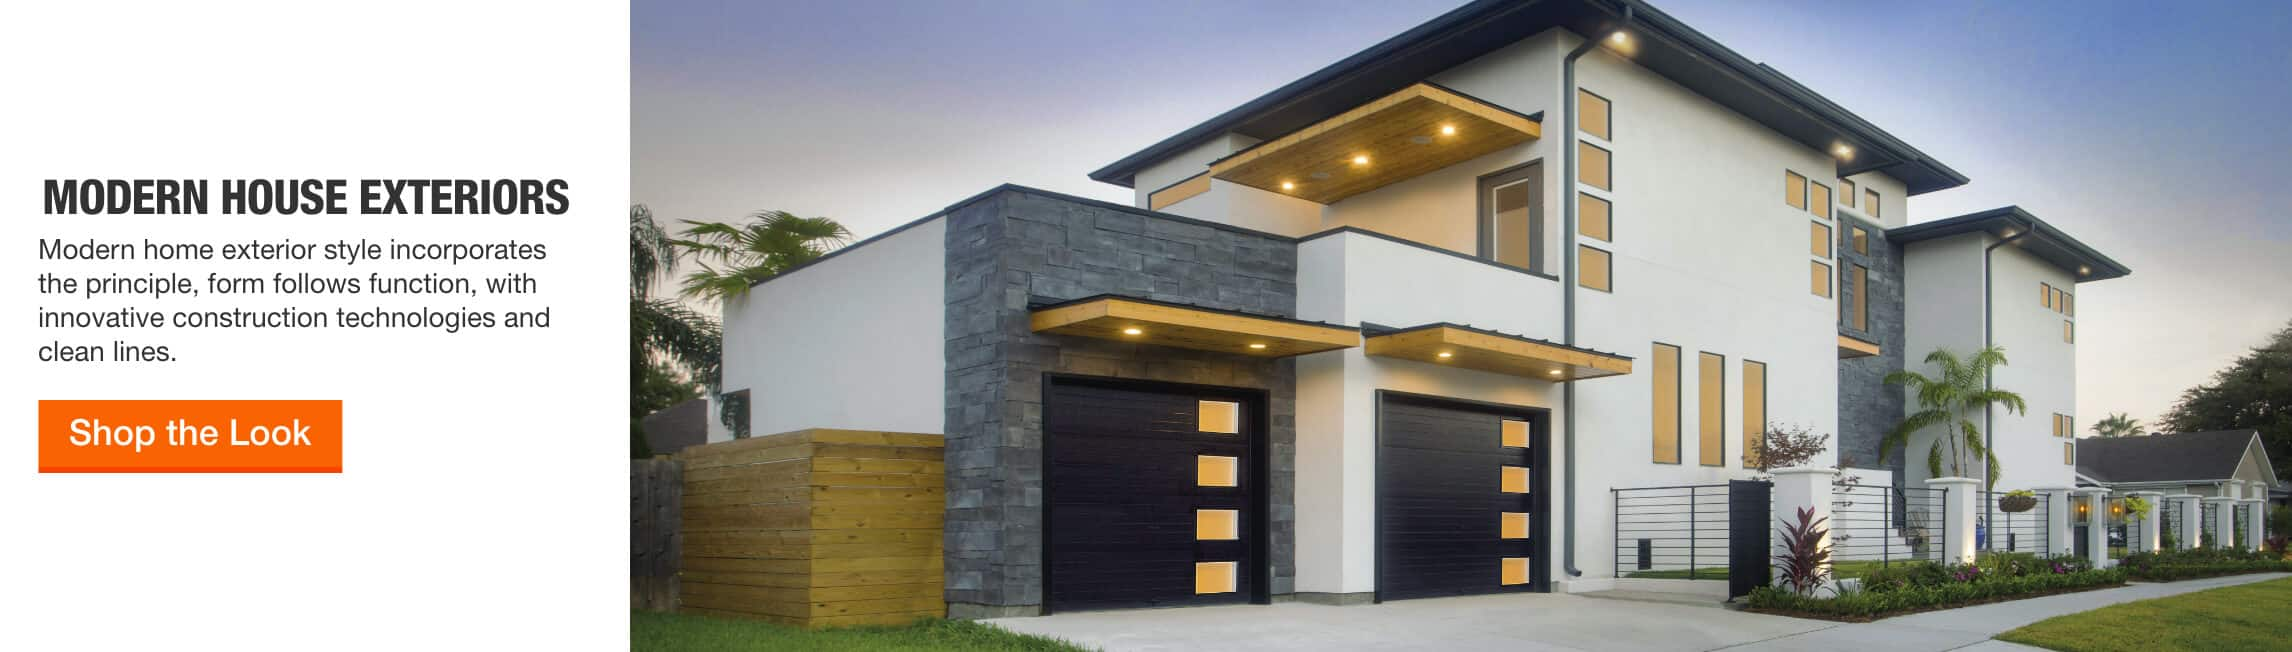 Modern House Exteriors - Modern home exterior style incorporates the principle, form follows function, with innovative construction technologies and clean lines. > Shop the Look